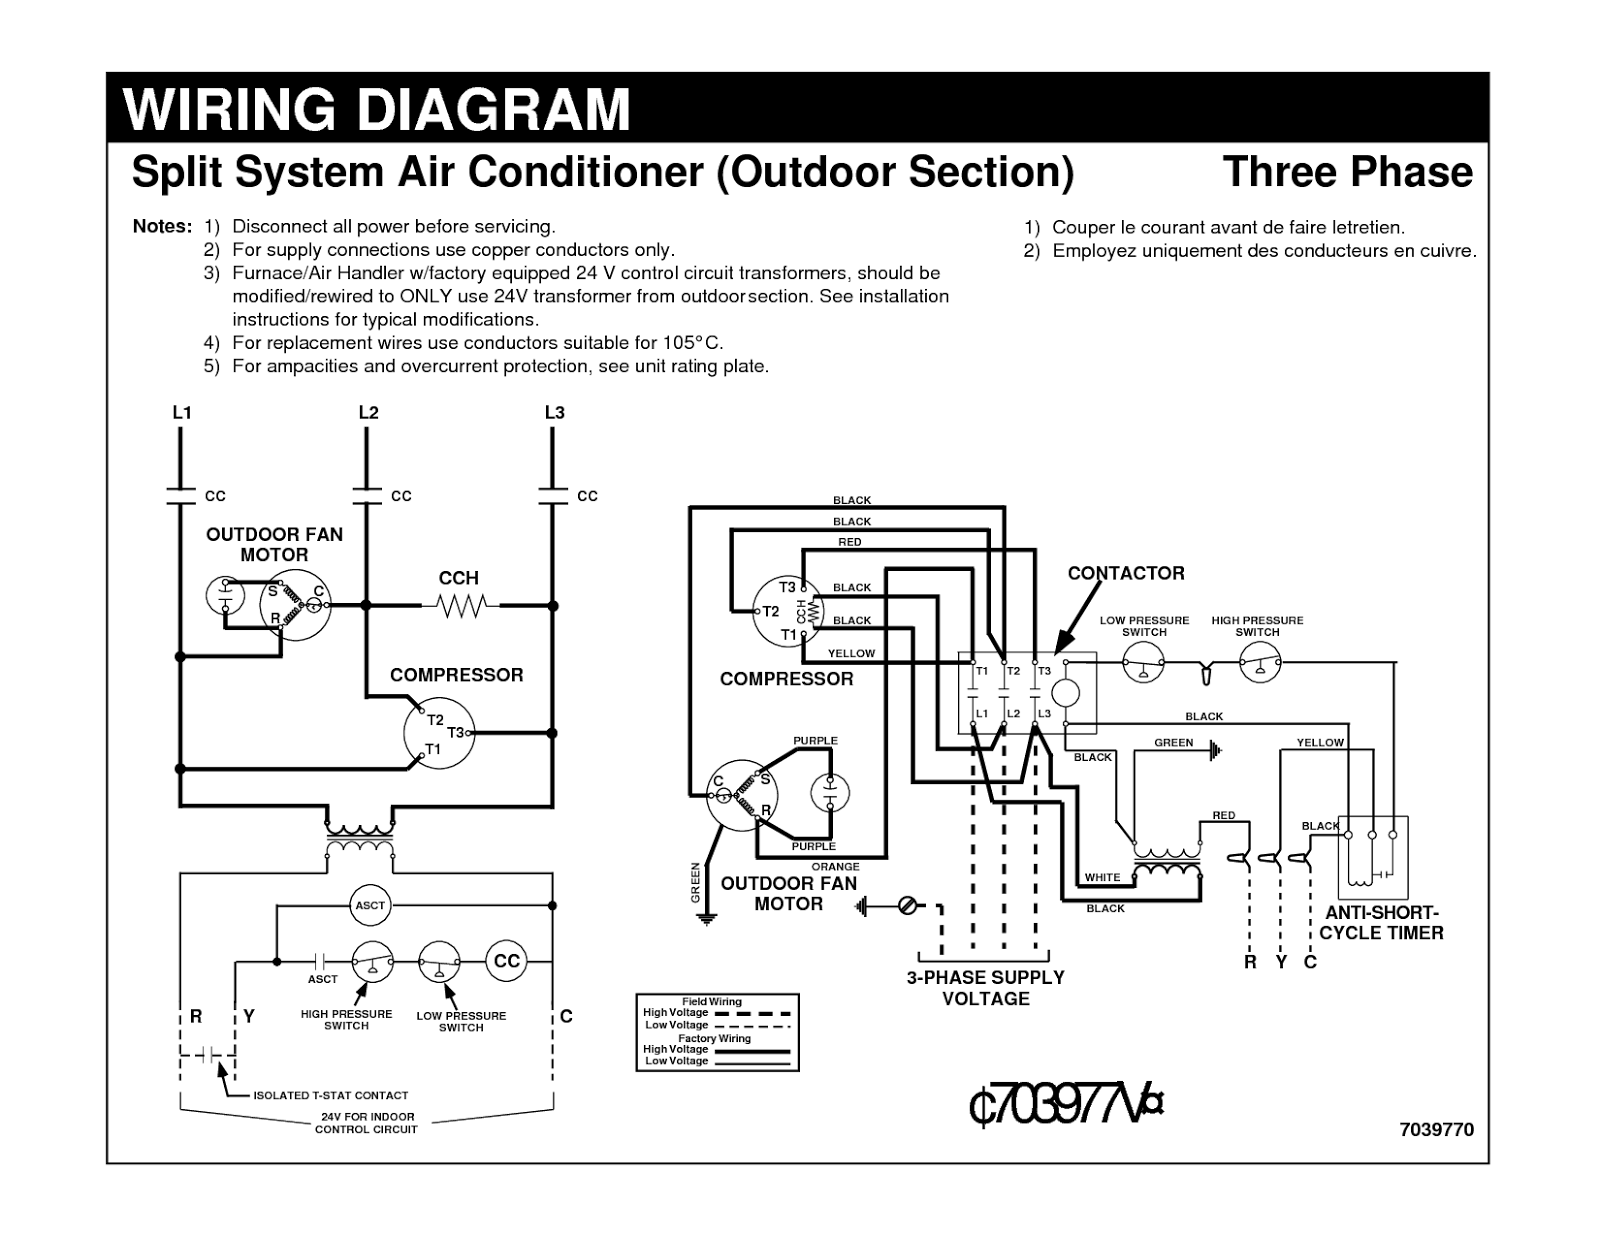 220 ac schematic wiring diagram wiring diagram third level220 vac air conditioning wiring diagram wiring diagram third level wiring schematic ac metering 220 ac schematic wiring diagram